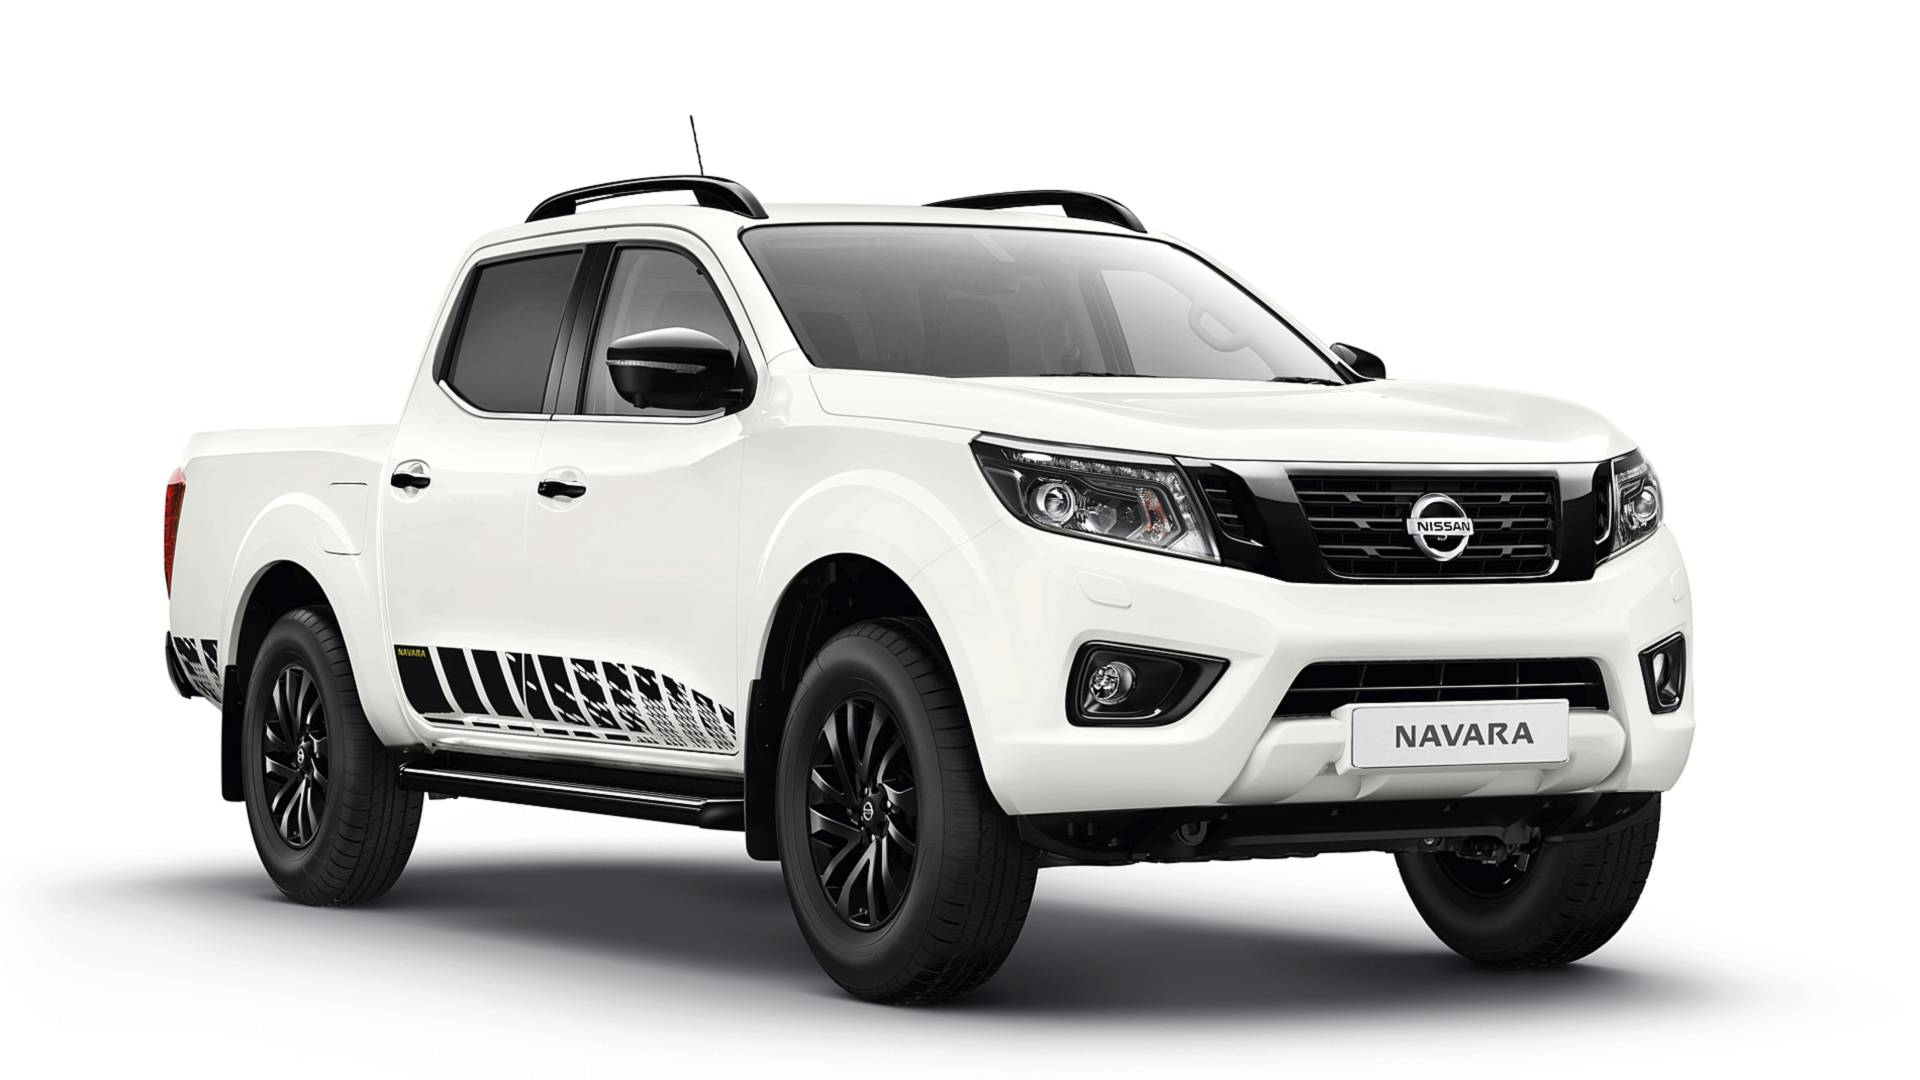 New Nissan Navara To Arrive In September 2020